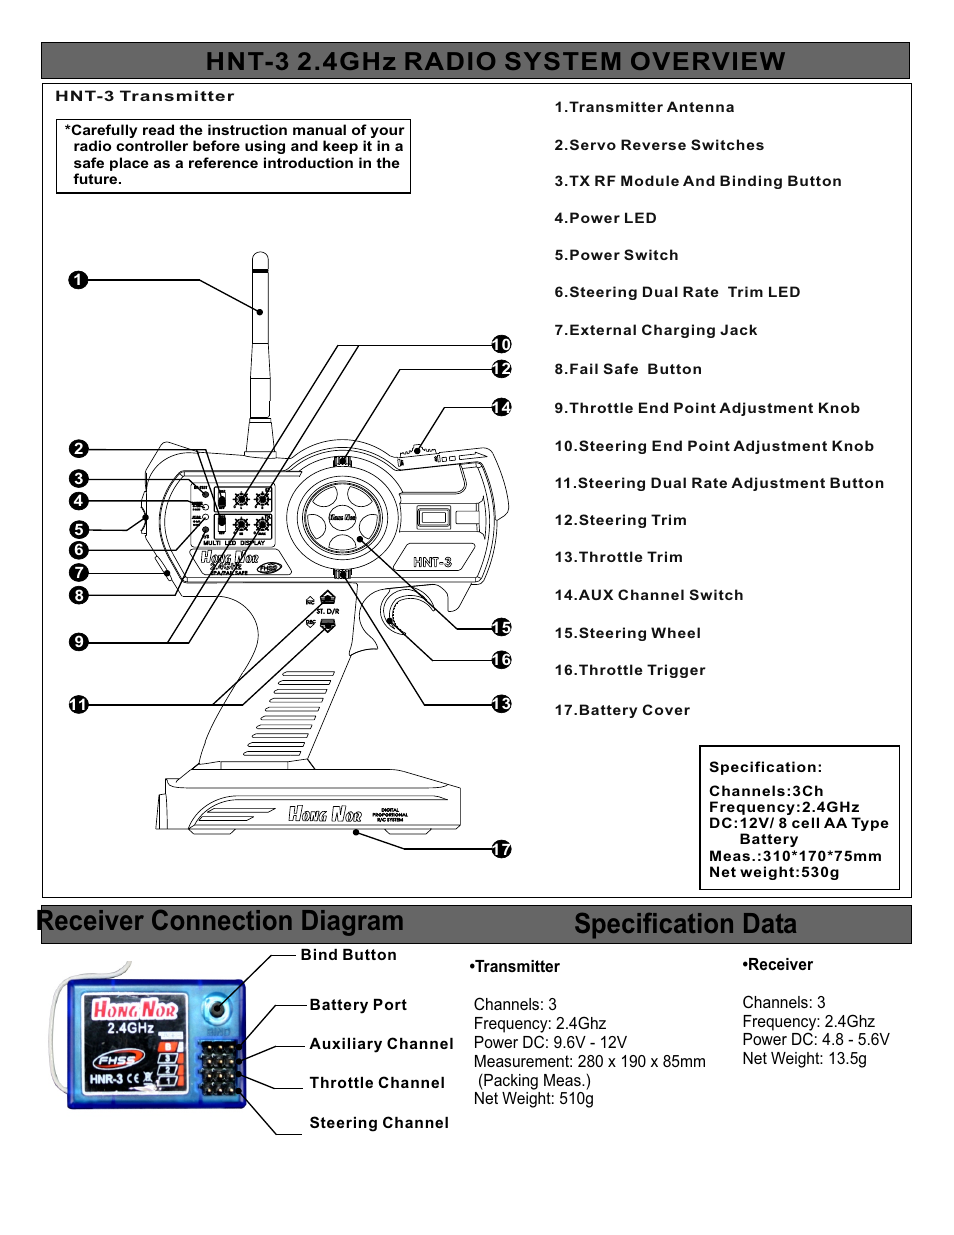 Receiver connection diagram specification data, Hnt-3 2.4ghz radio system  overview | OFNA